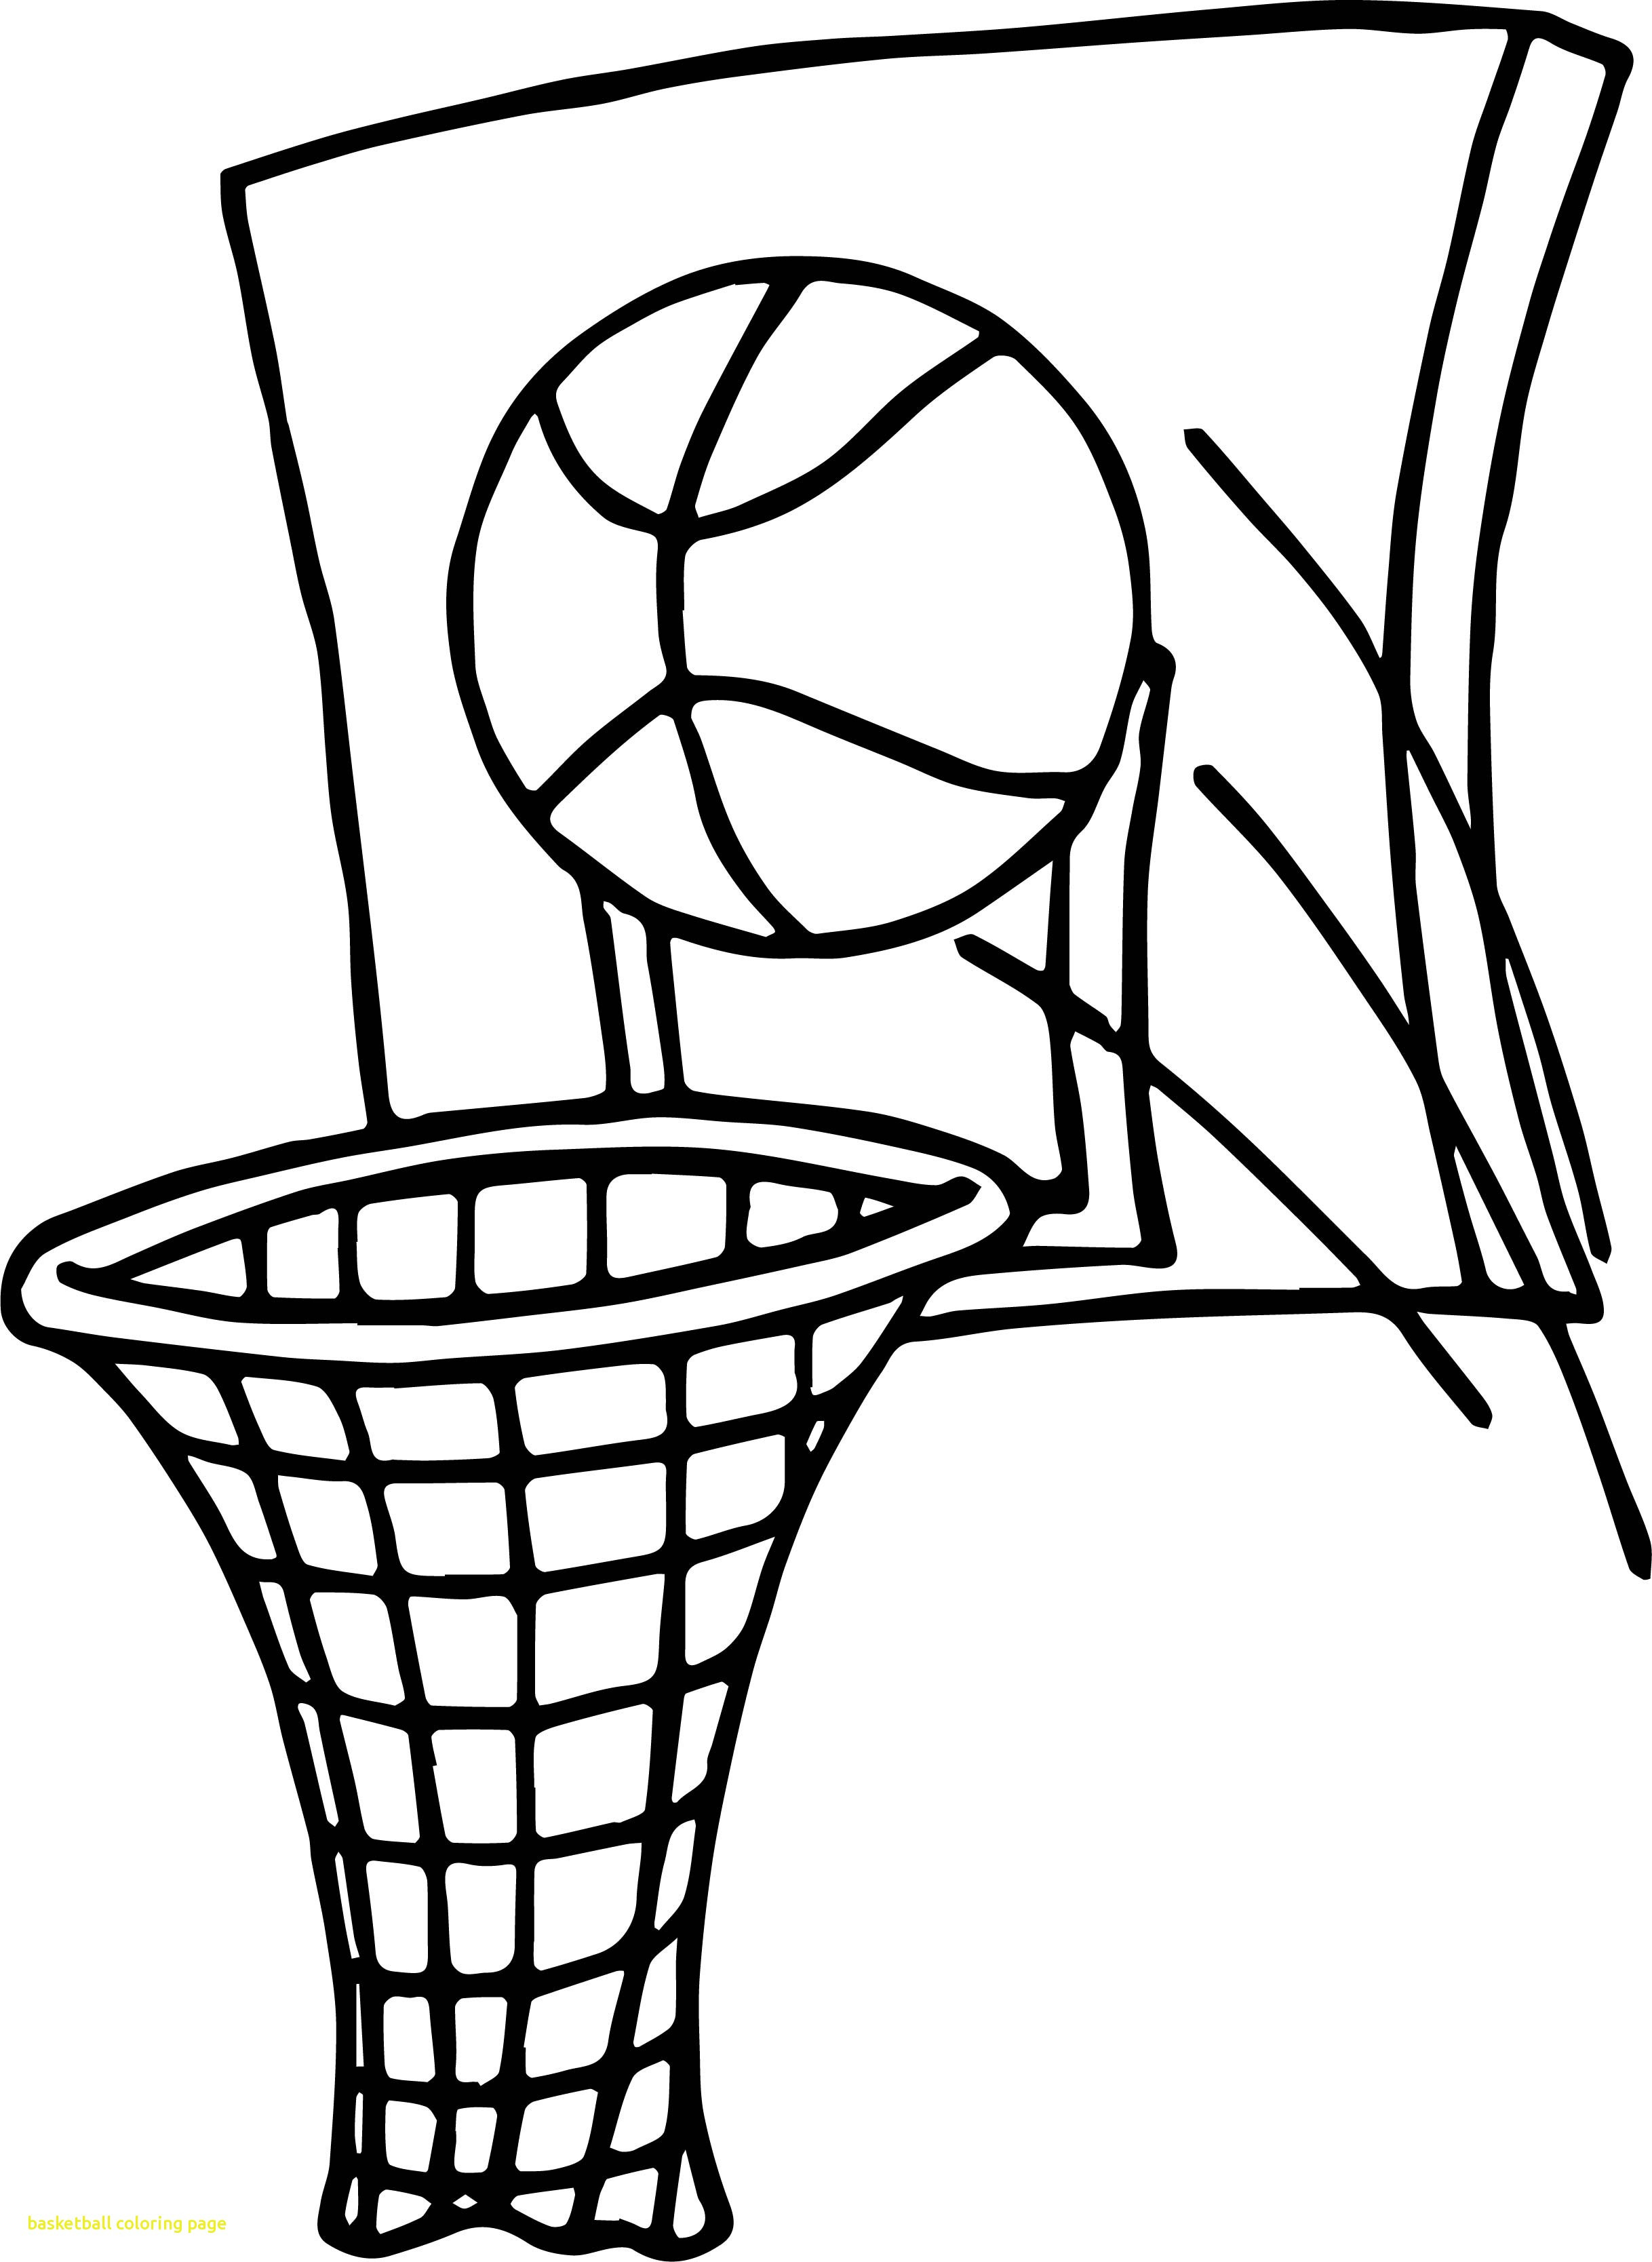 2436x3335 Stephen Curry Basketball Shoes Coloring Pages For Unusual